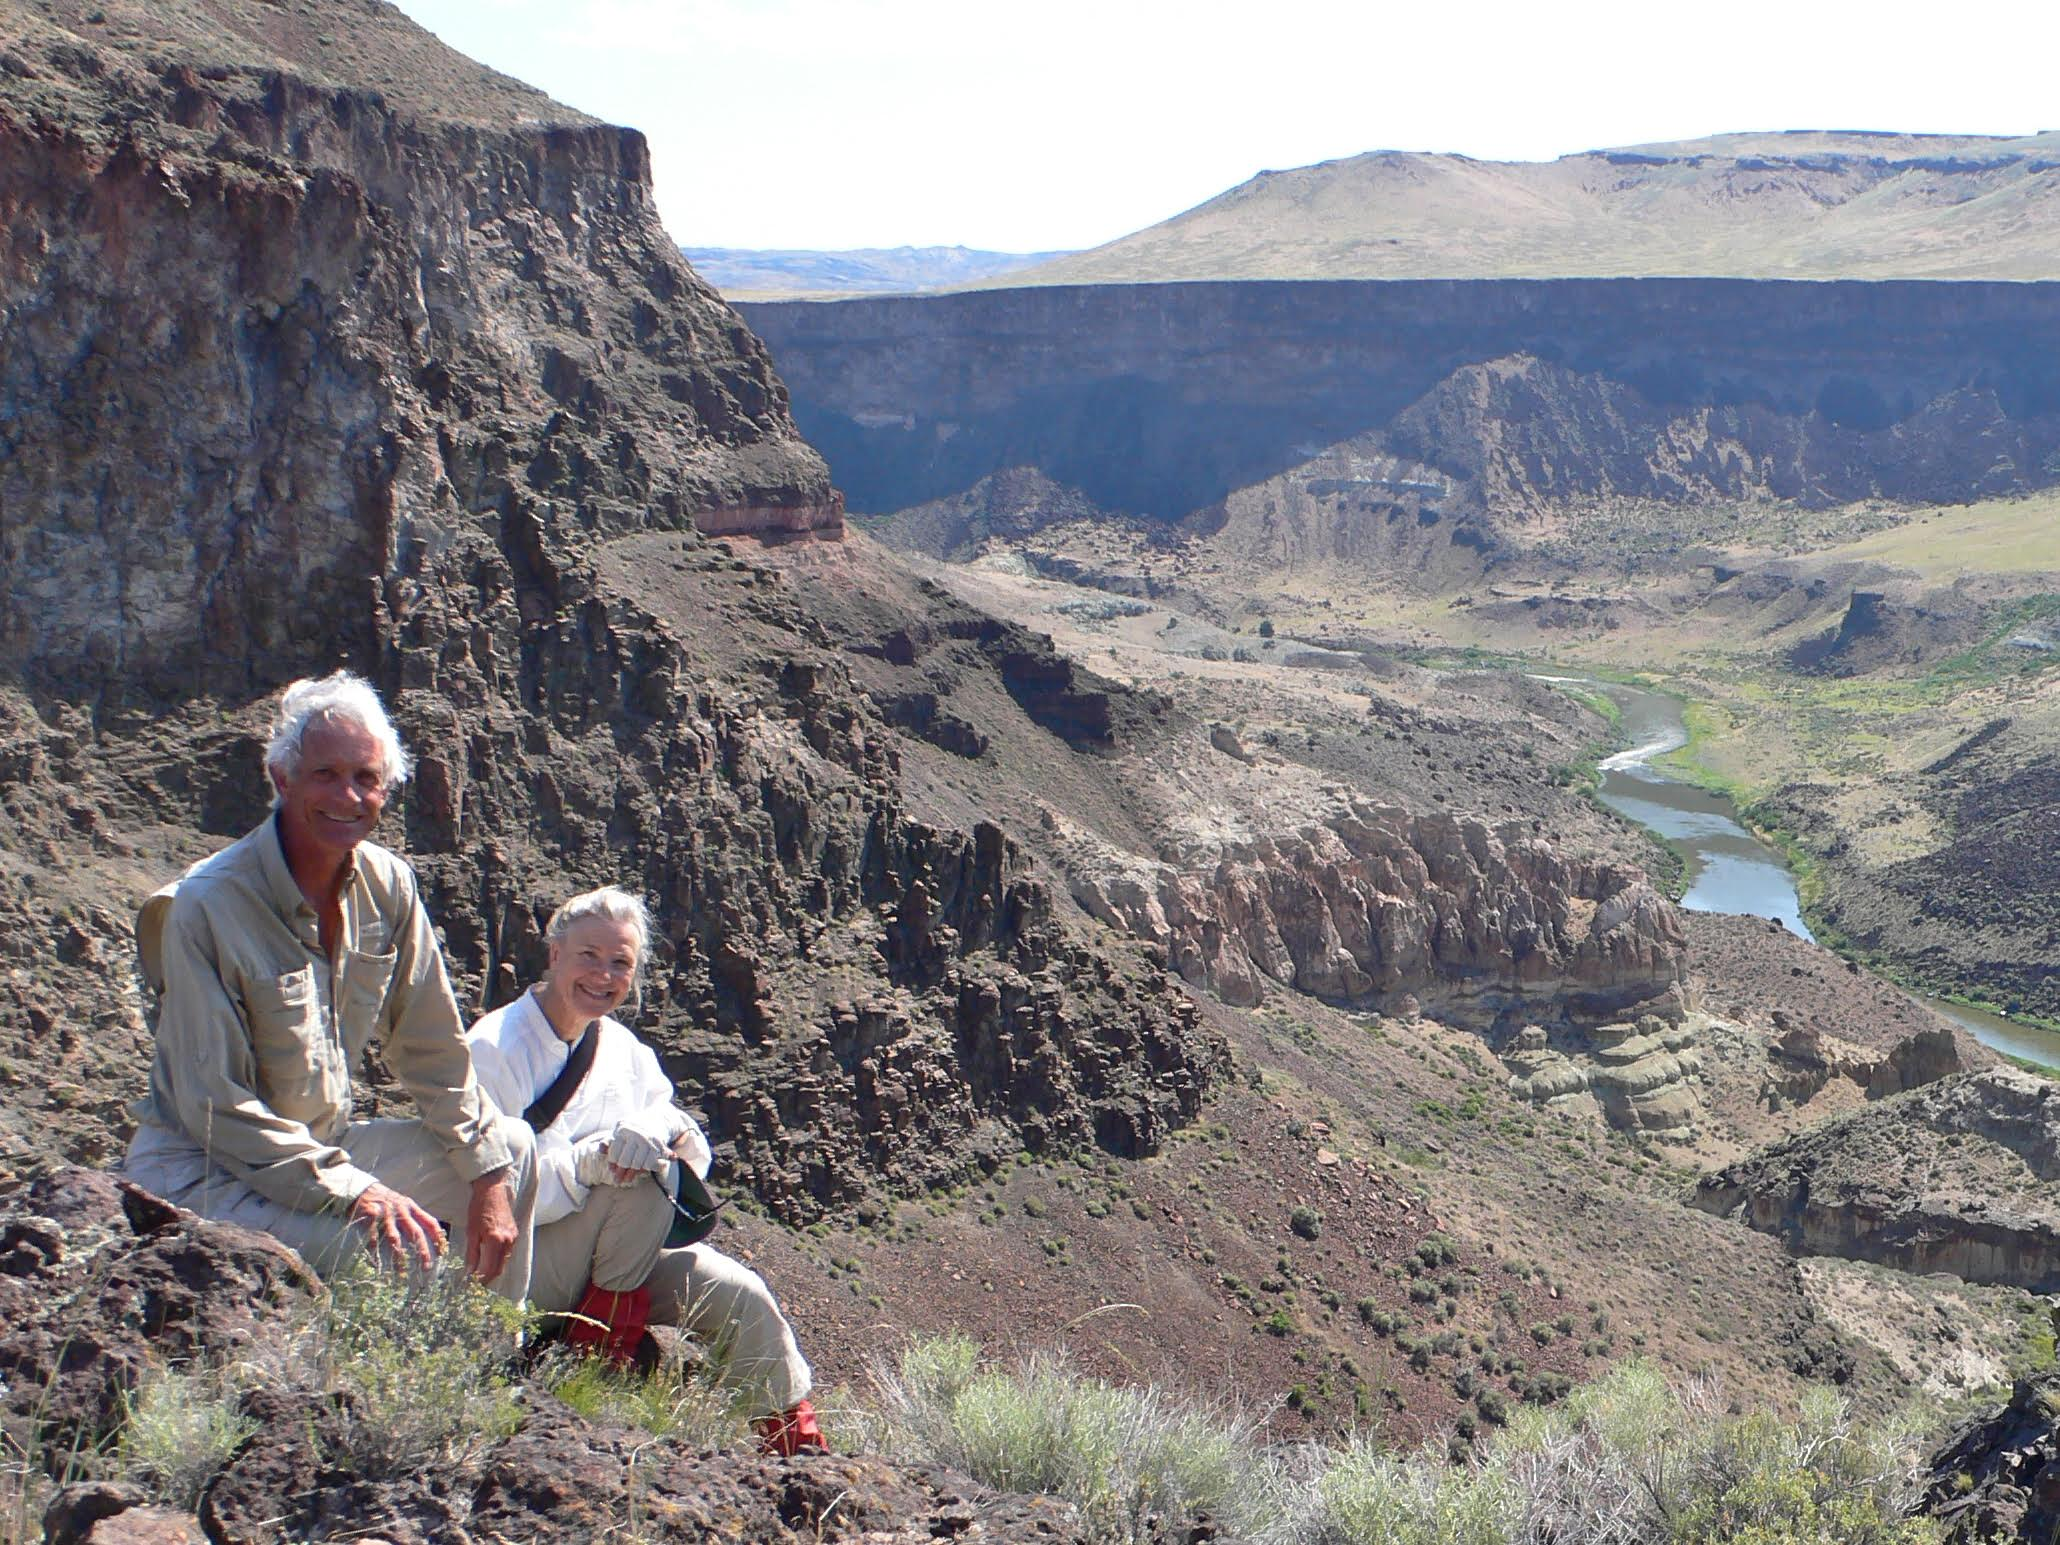 Mike Quigley and Bonnie Olin take a break along the rim of the Jackson Hole area of the Owyhee River in Oregon. Photo by Mike Quigley.